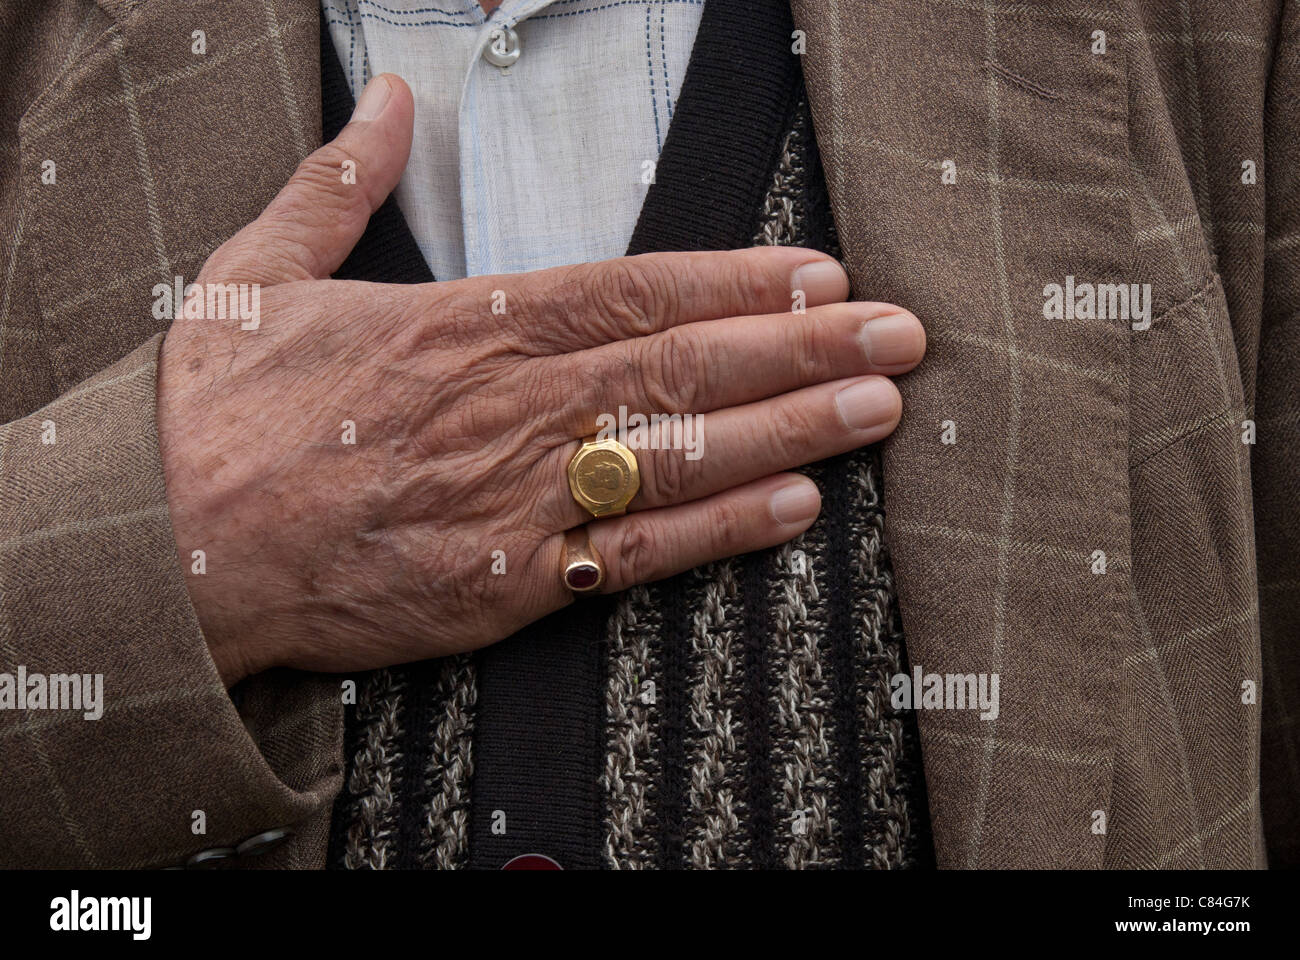 MAN HOLDING HIS HAND ON HIS CHEST,CLOSE UP SHOOT - Stock Image